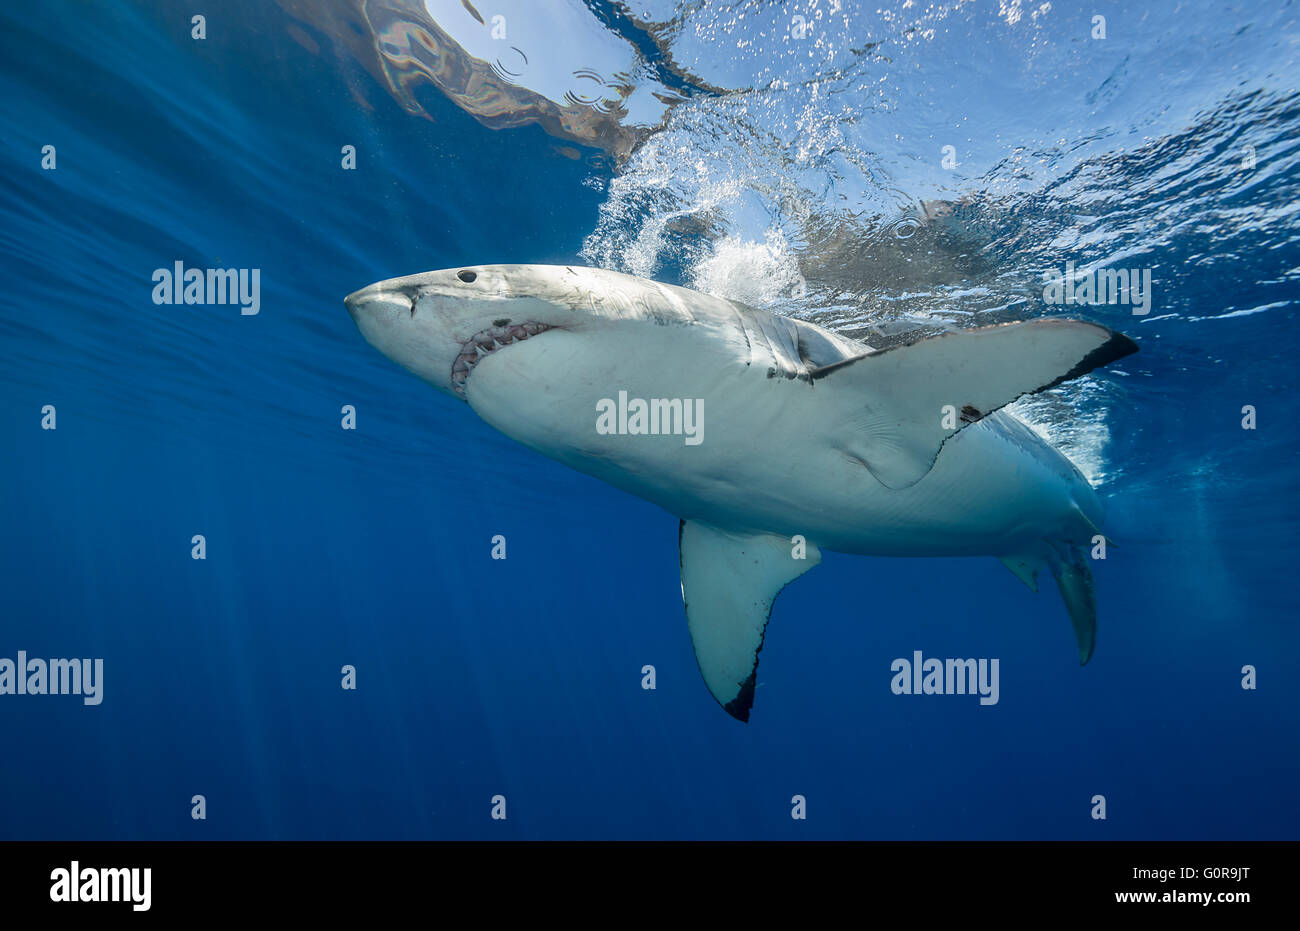 Great white shark underwater at Guadalupe Island, Mexico Stock Photo